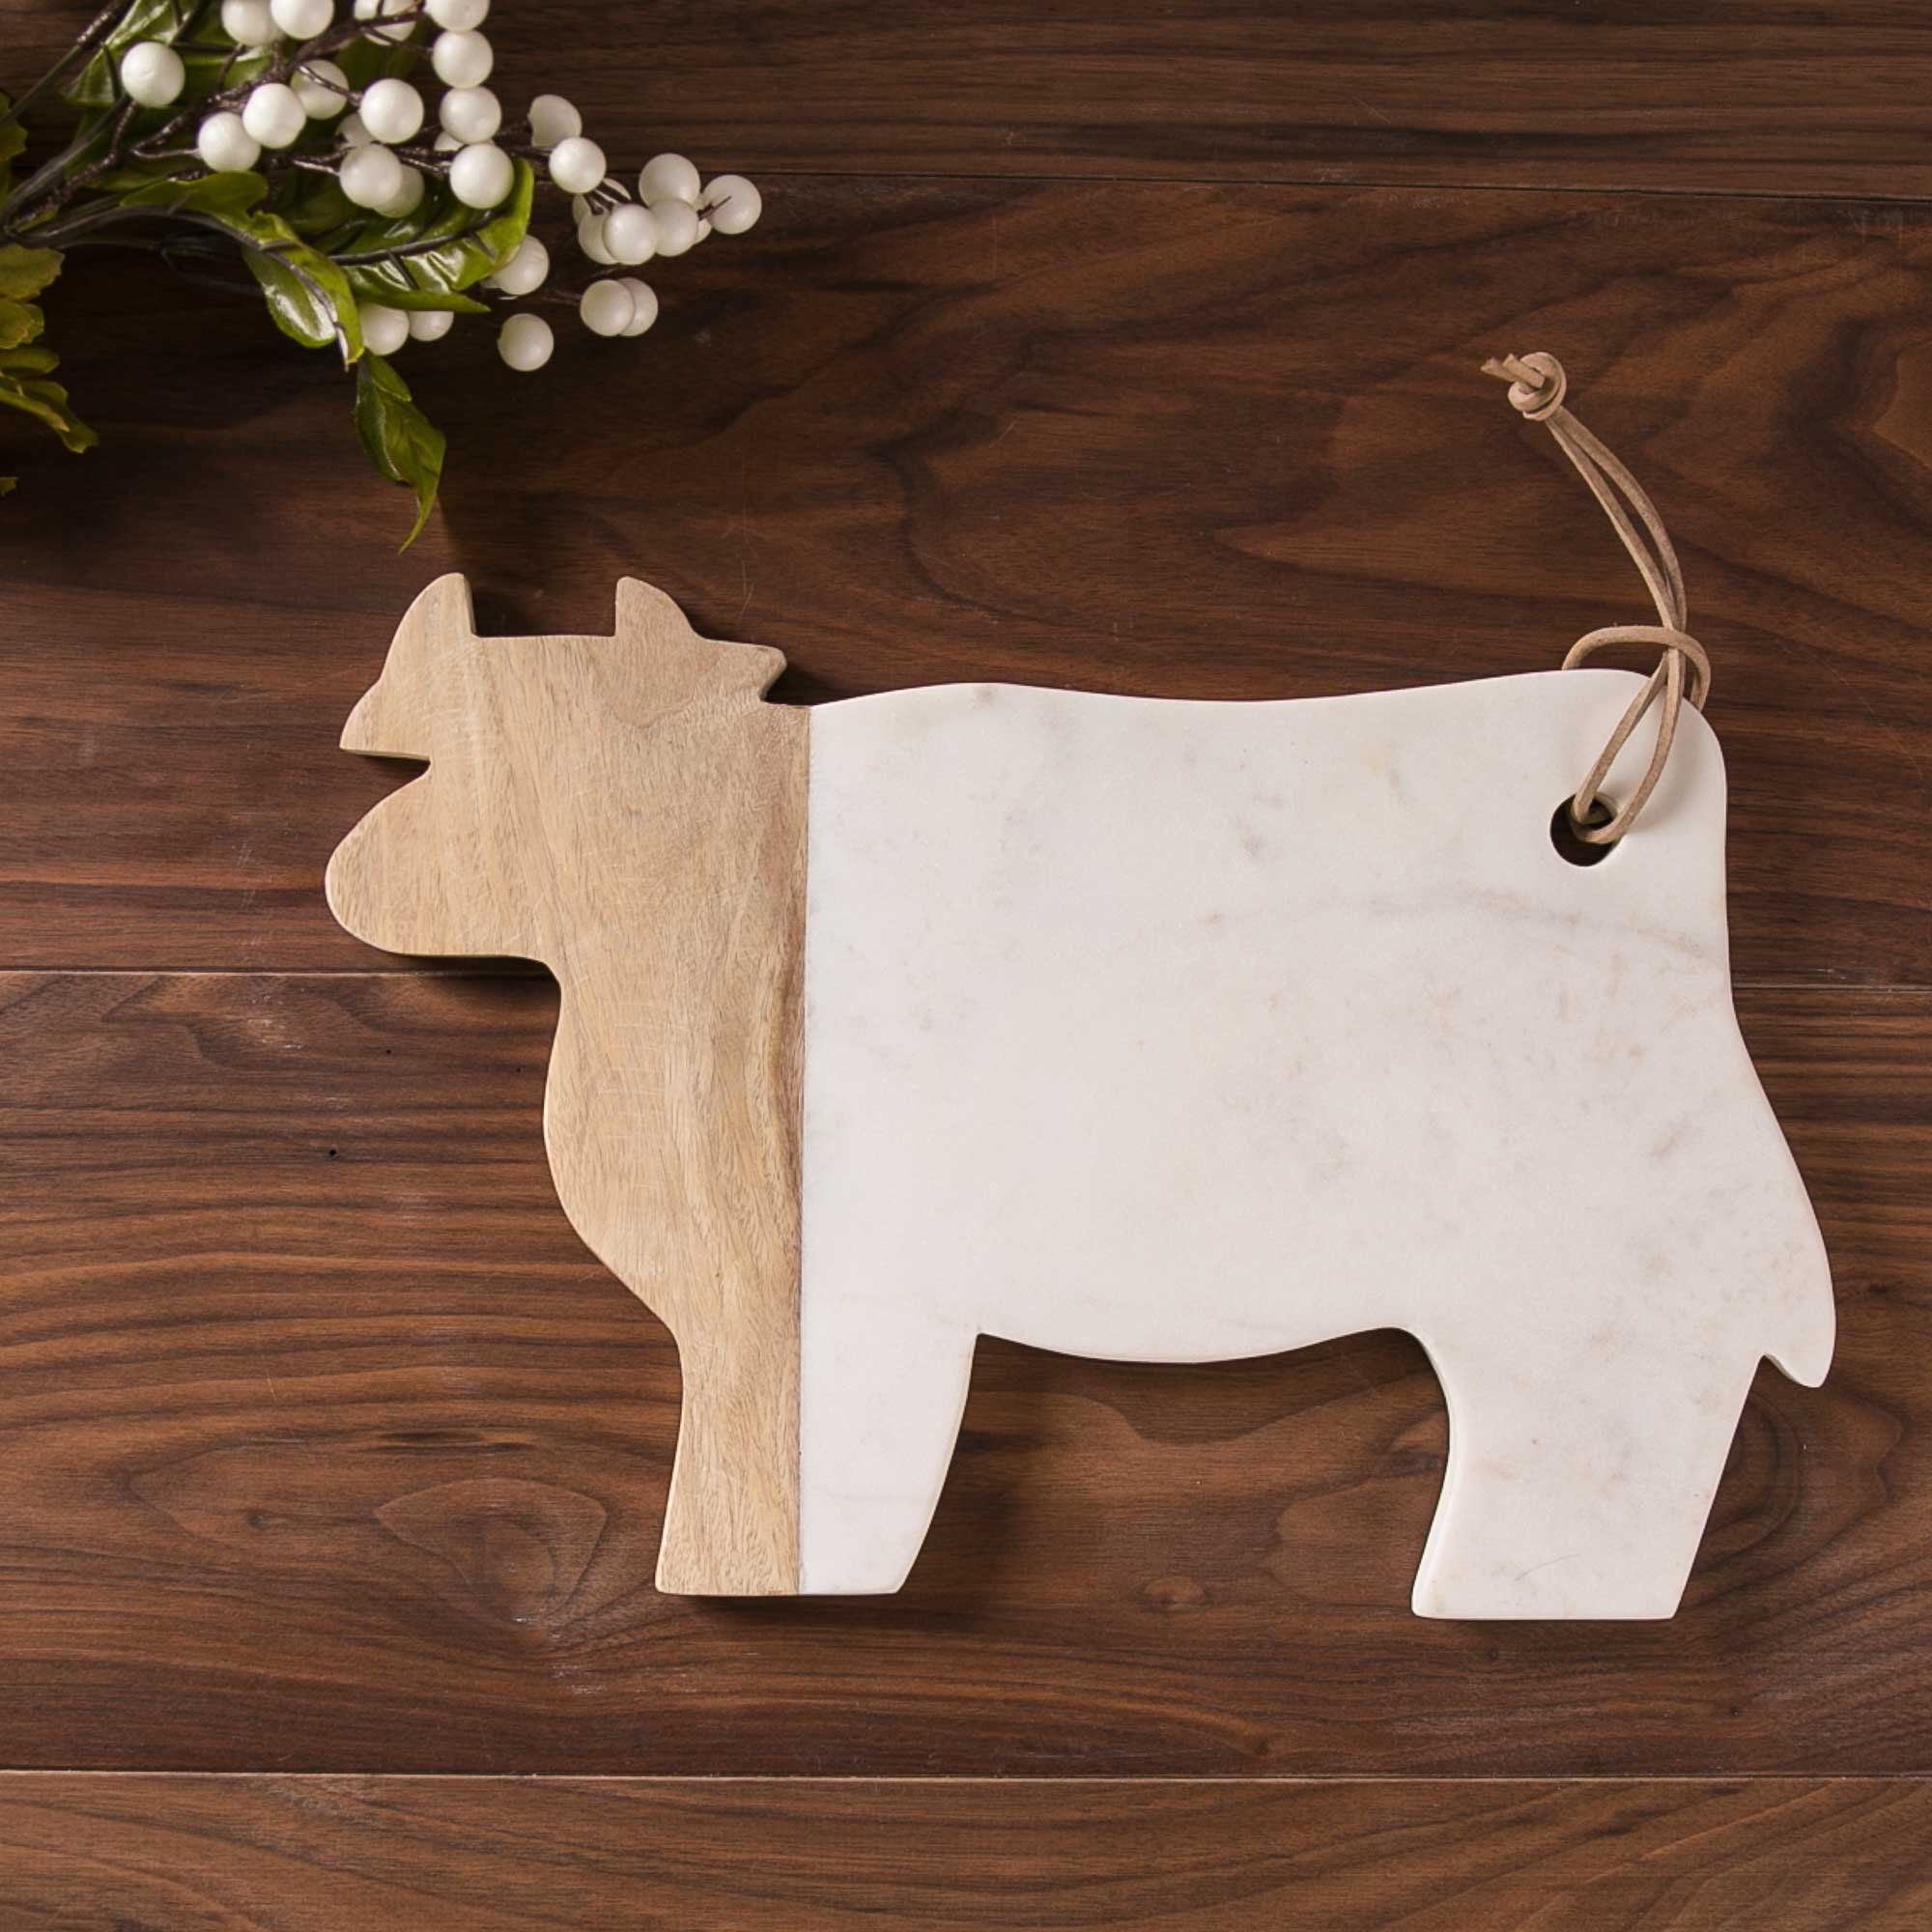 Marble and Wood Cow Cutting Board